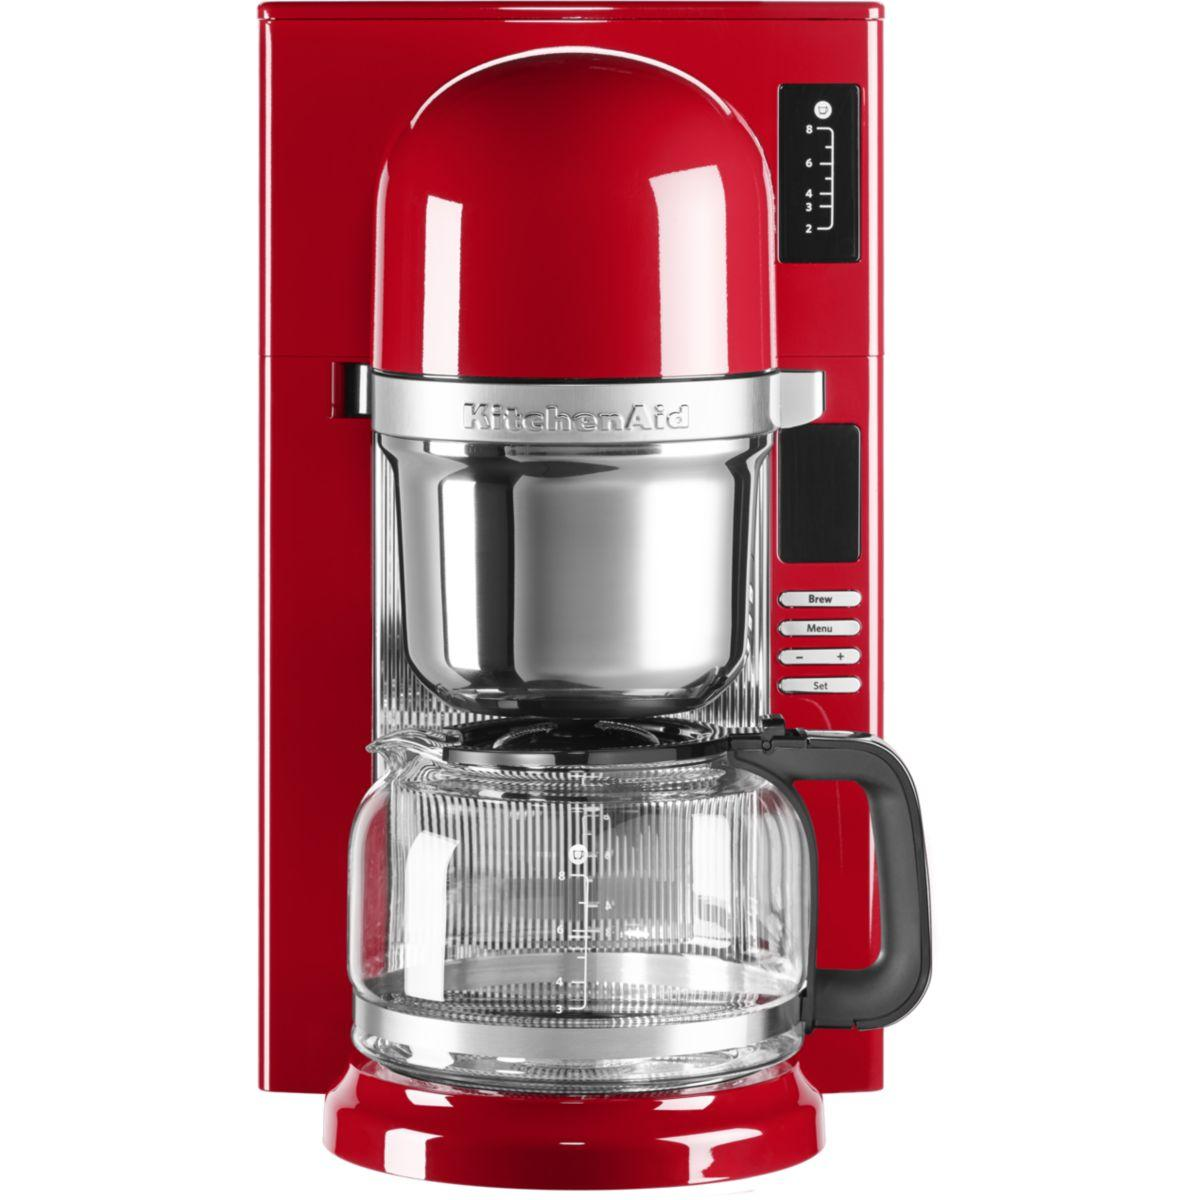 Cafeti�re programmable kitchenaid 5kcm0802eer rouge empire (photo)